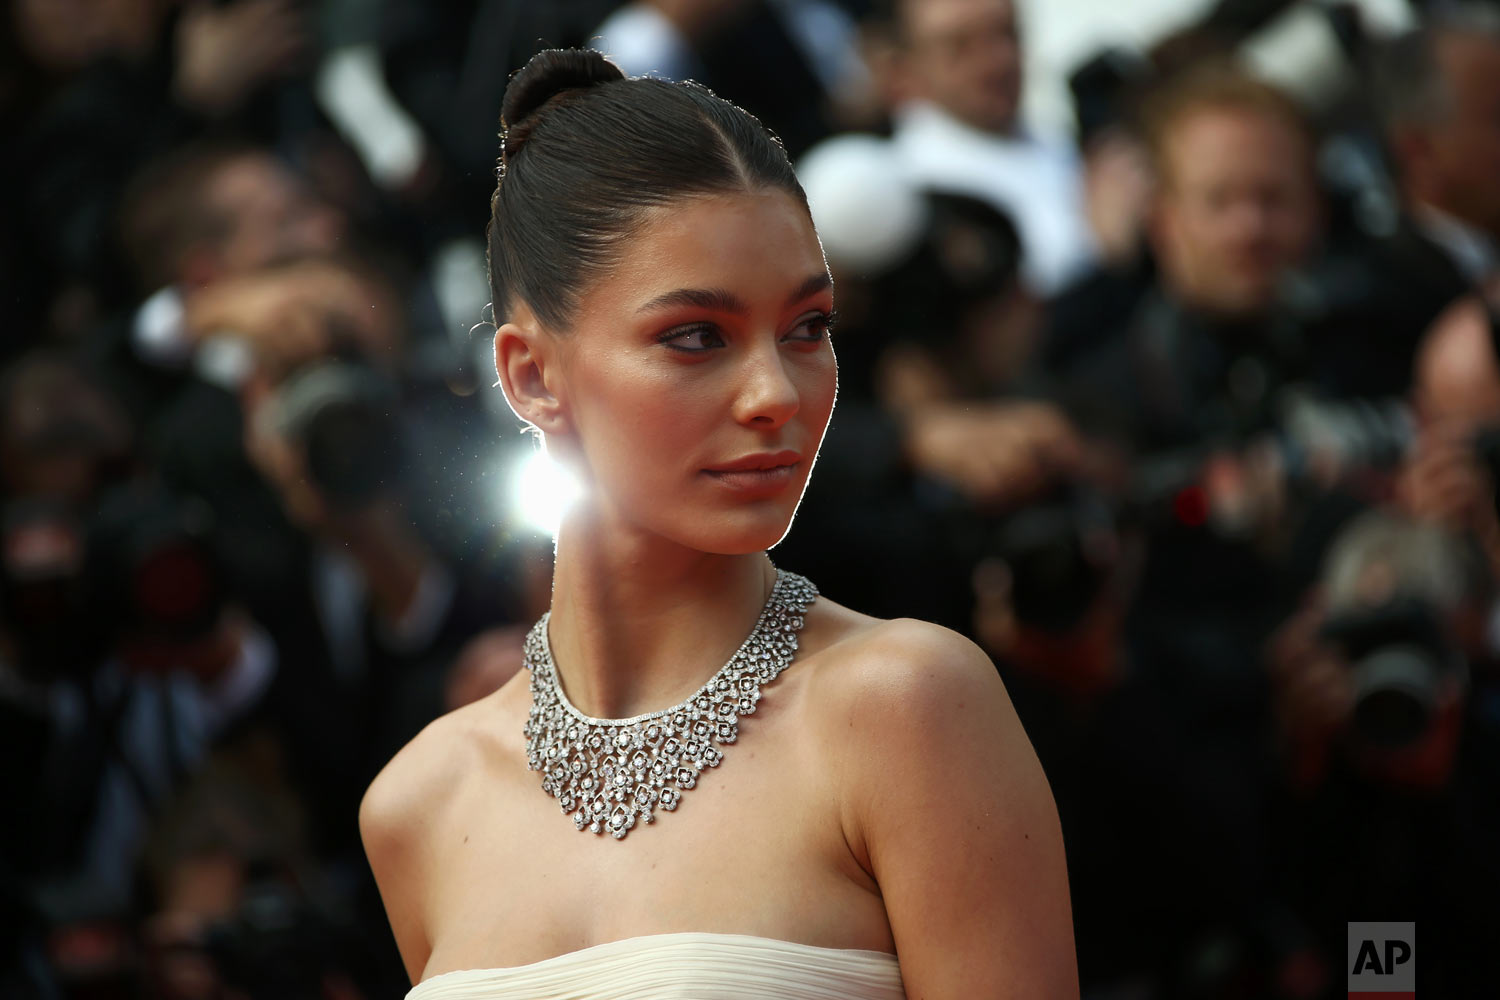 Model Camila Morrone poses at the 72nd international film festival, Cannes, France, May 21, 2019. (Photo by Joel C Ryan/Invision/AP)